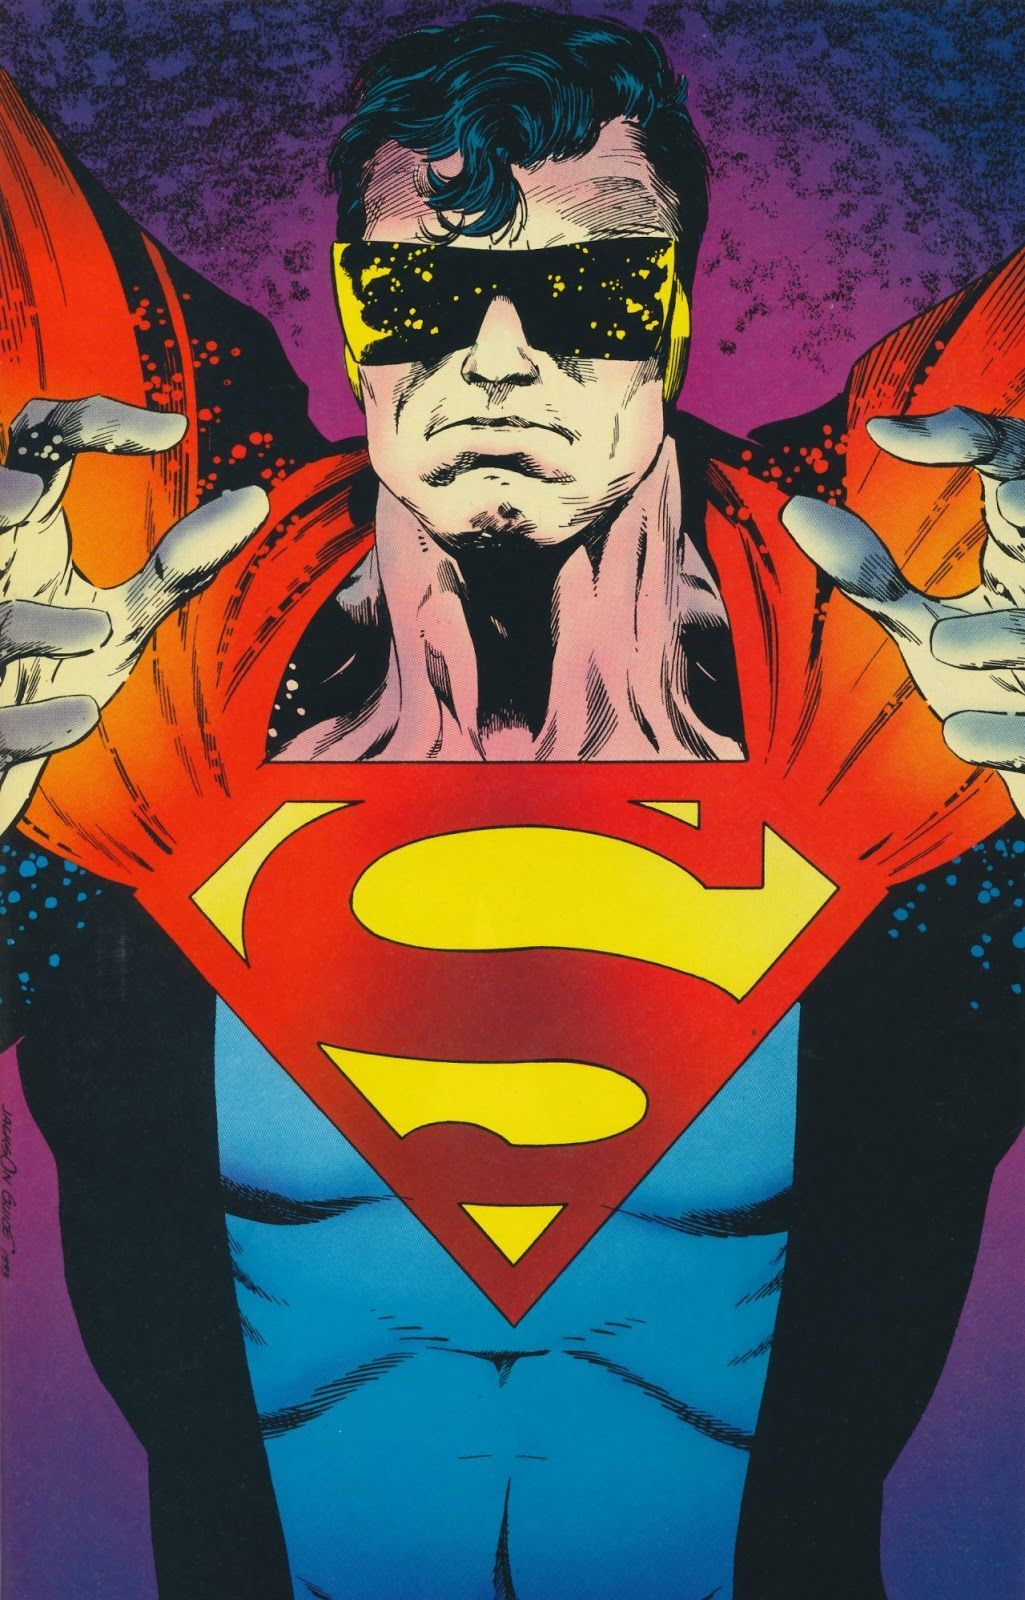 Action Comics #687 (Written by Roger Stern, Art by Jackson Guice and Denis Rodier)